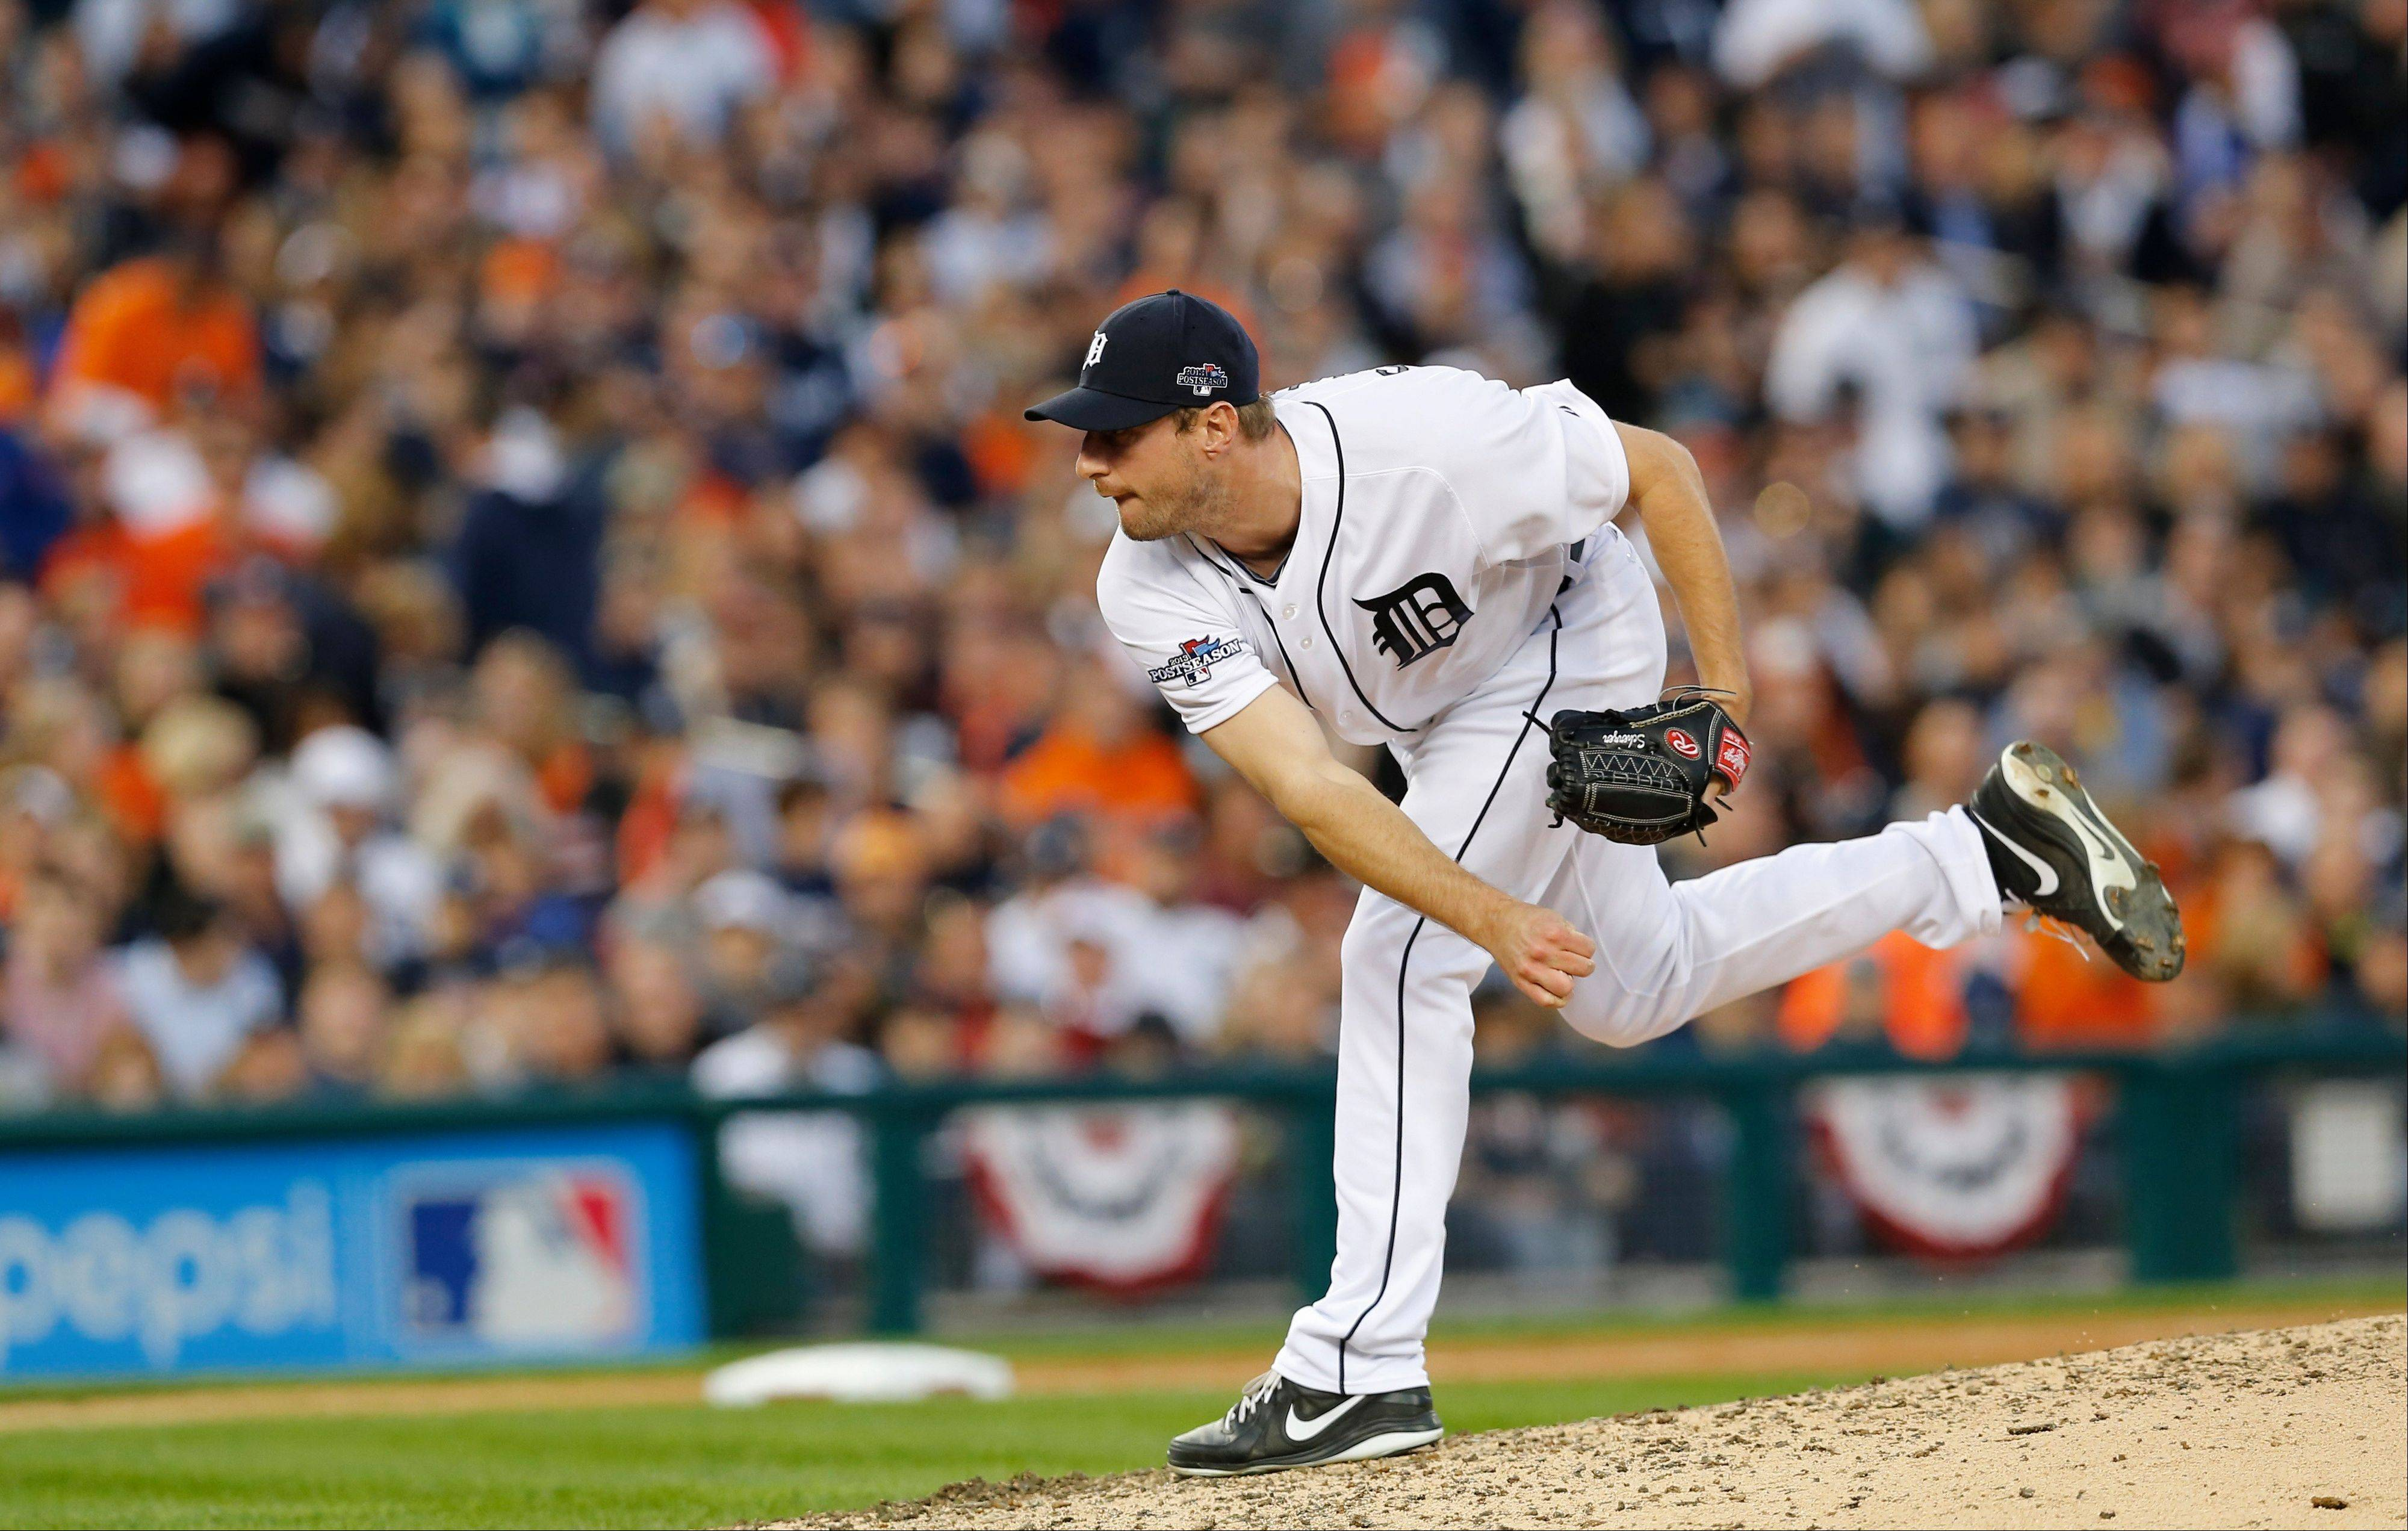 Tigers pitcher Max Scherzer follows through during the seventh inning of Game 4 of the division series against the Oakland Athletics. Scherzer will start in Game 2 of the ALCS against Boston.